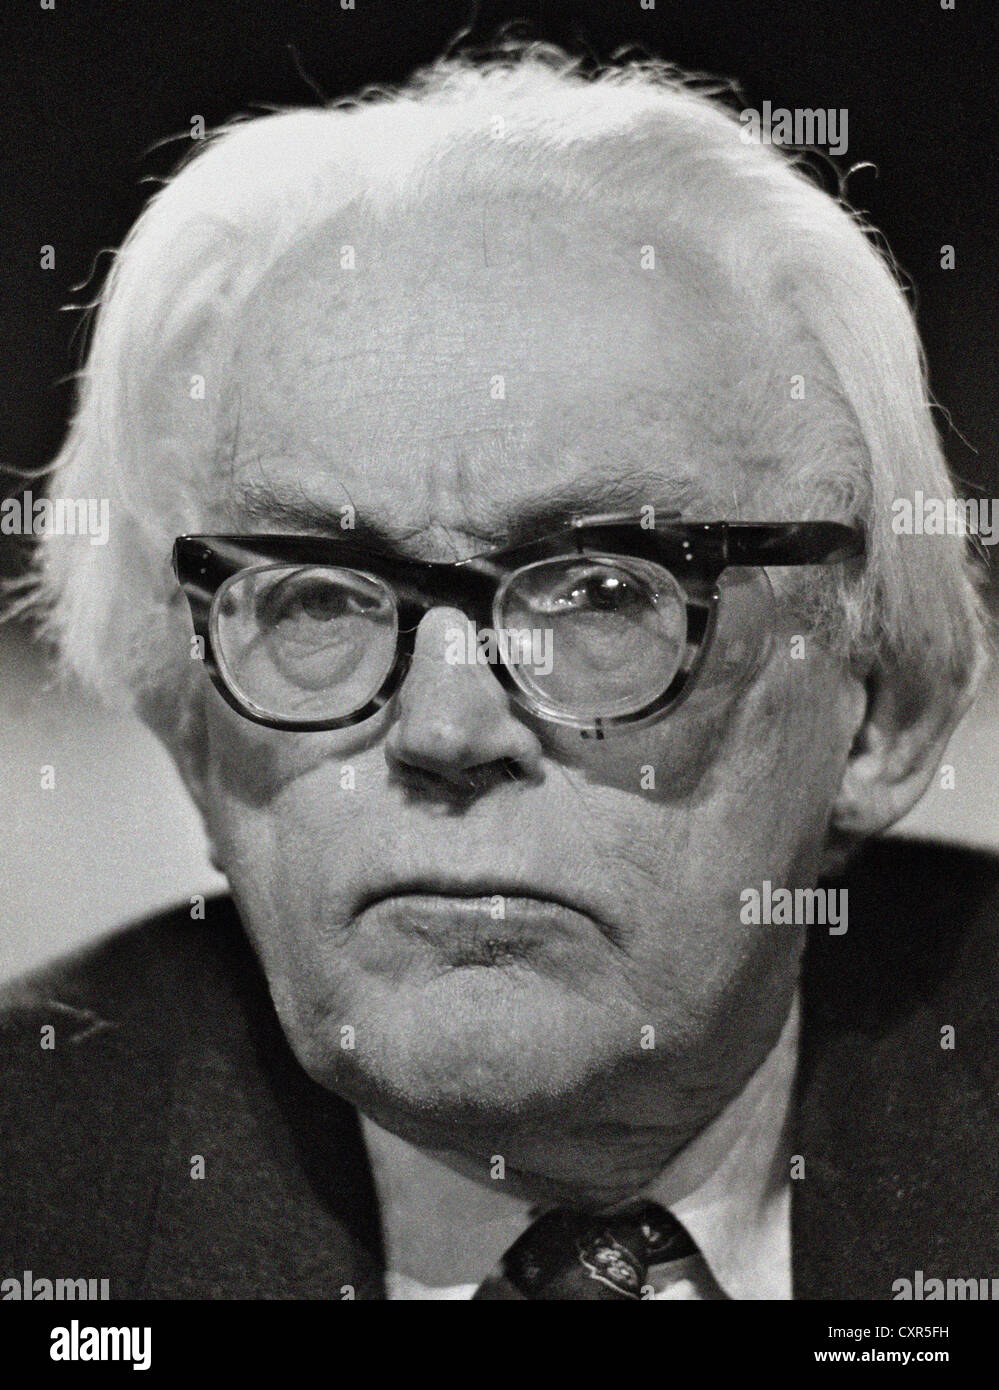 Michael Mackintosh Foot (born 23 July 1913) is a British politician and writer. He was leader of the Labour Party - Stock Image